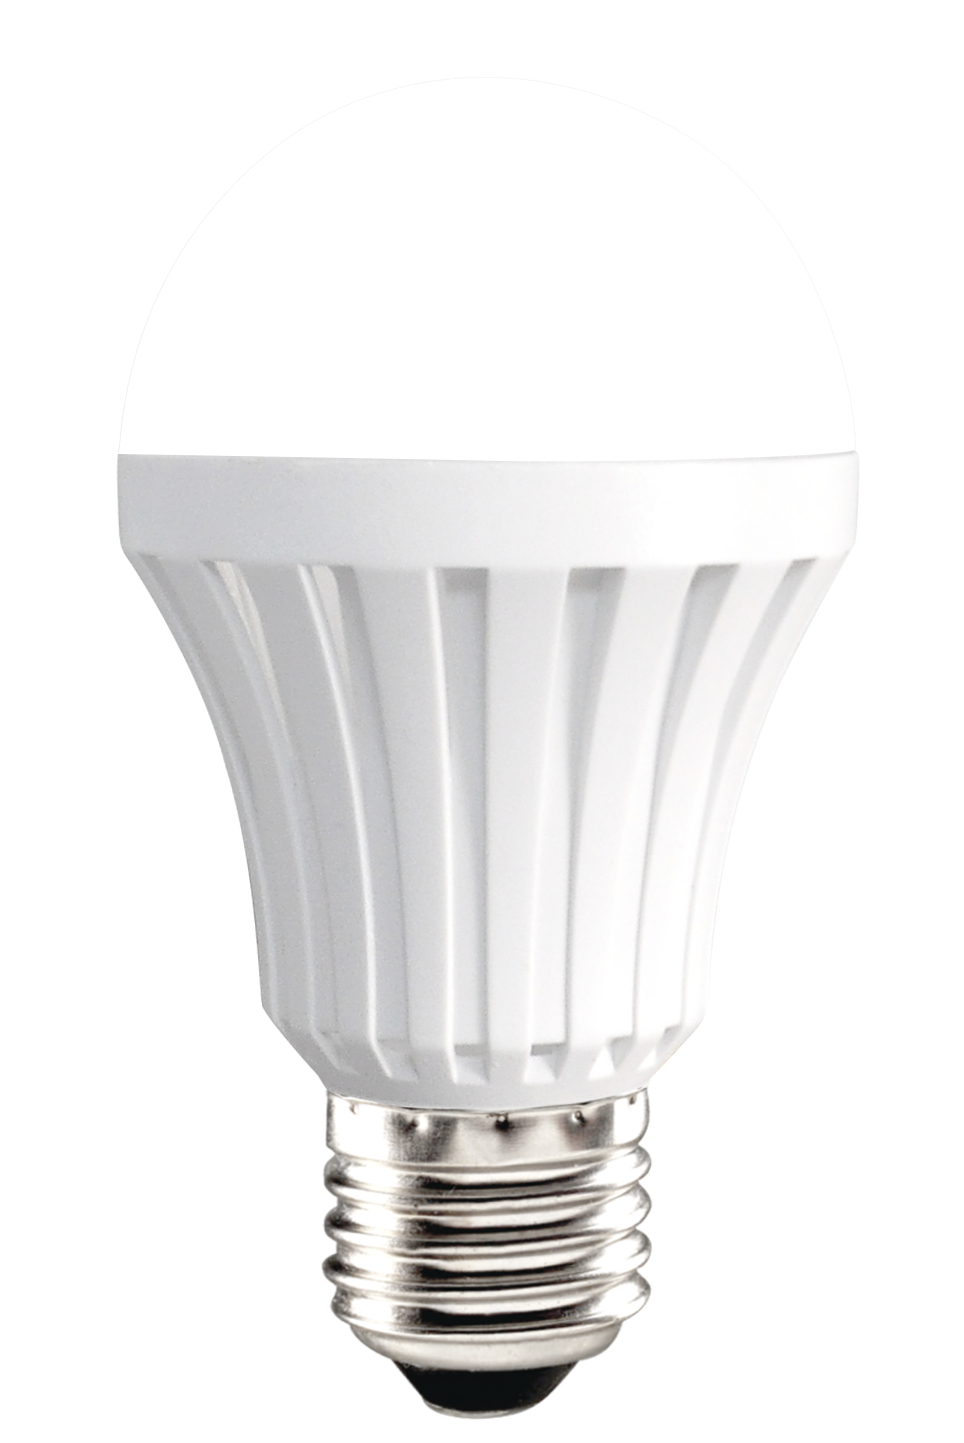 LED BULD plastic body Dien Quang A80 9W warmwhite frosted cover